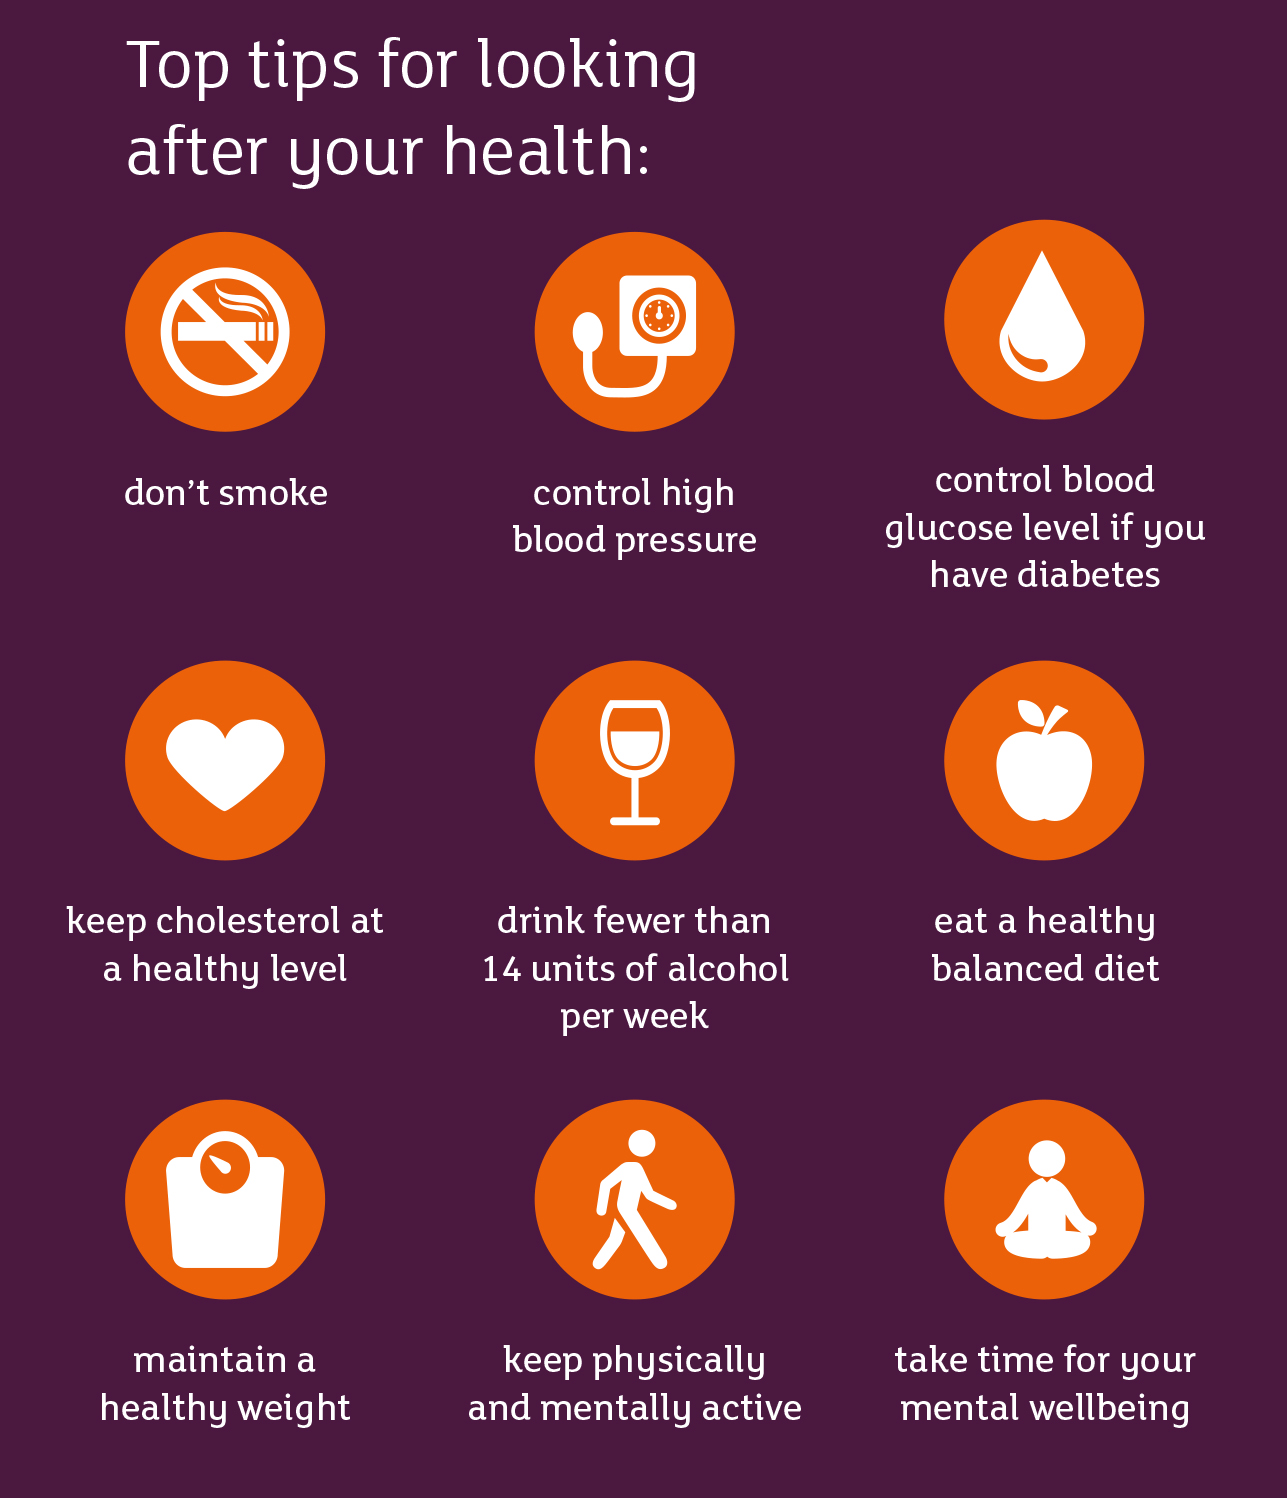 Top Tips For Looking After Your Health